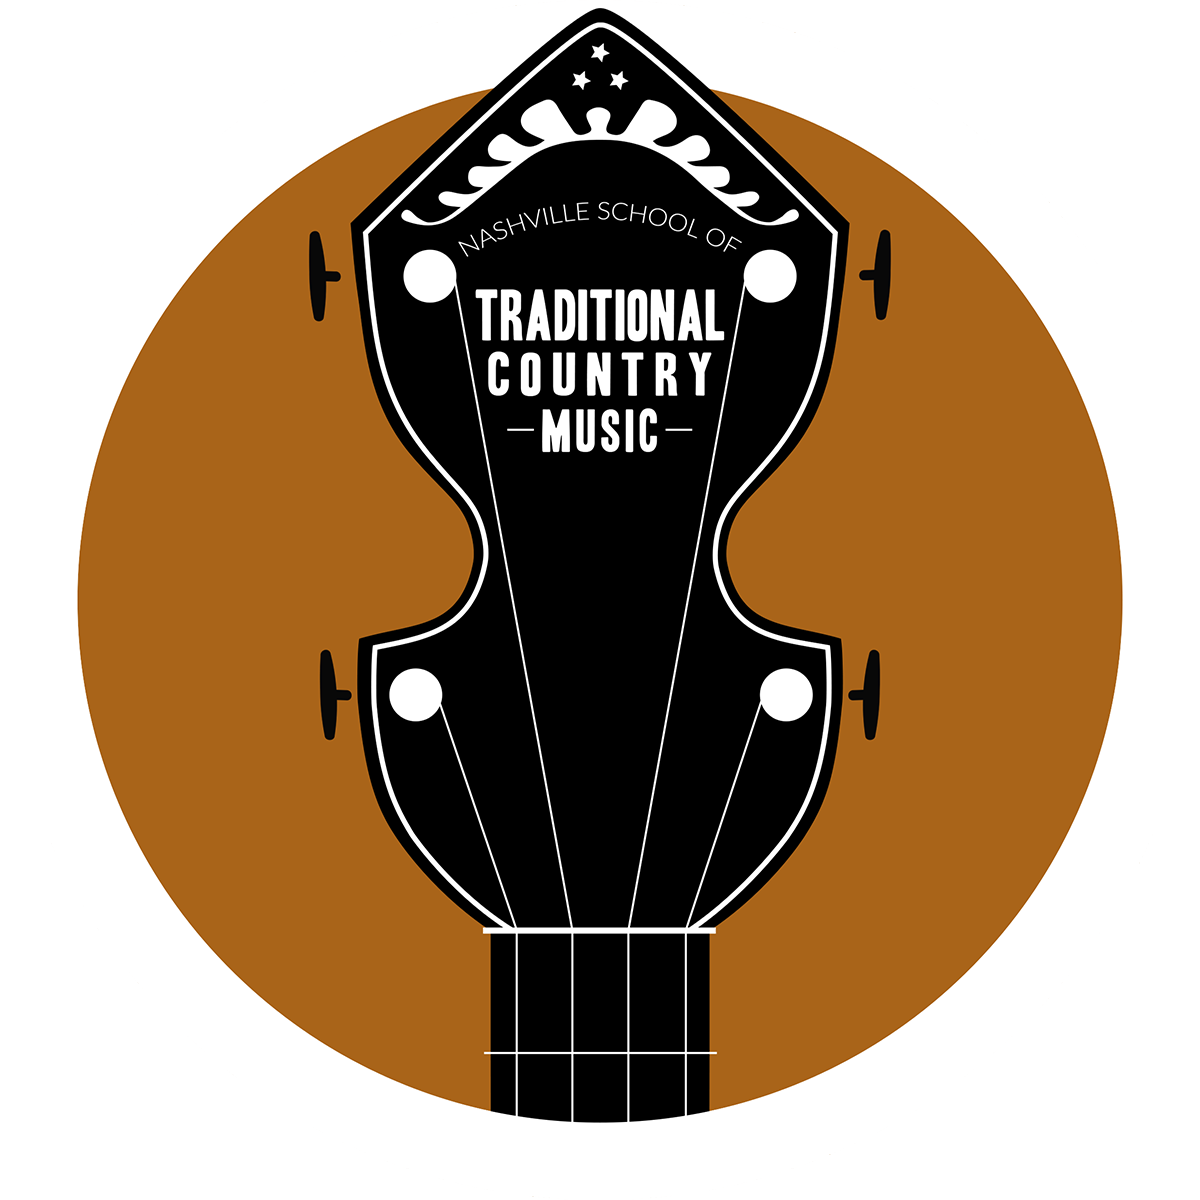 Country music png. The nashville school of